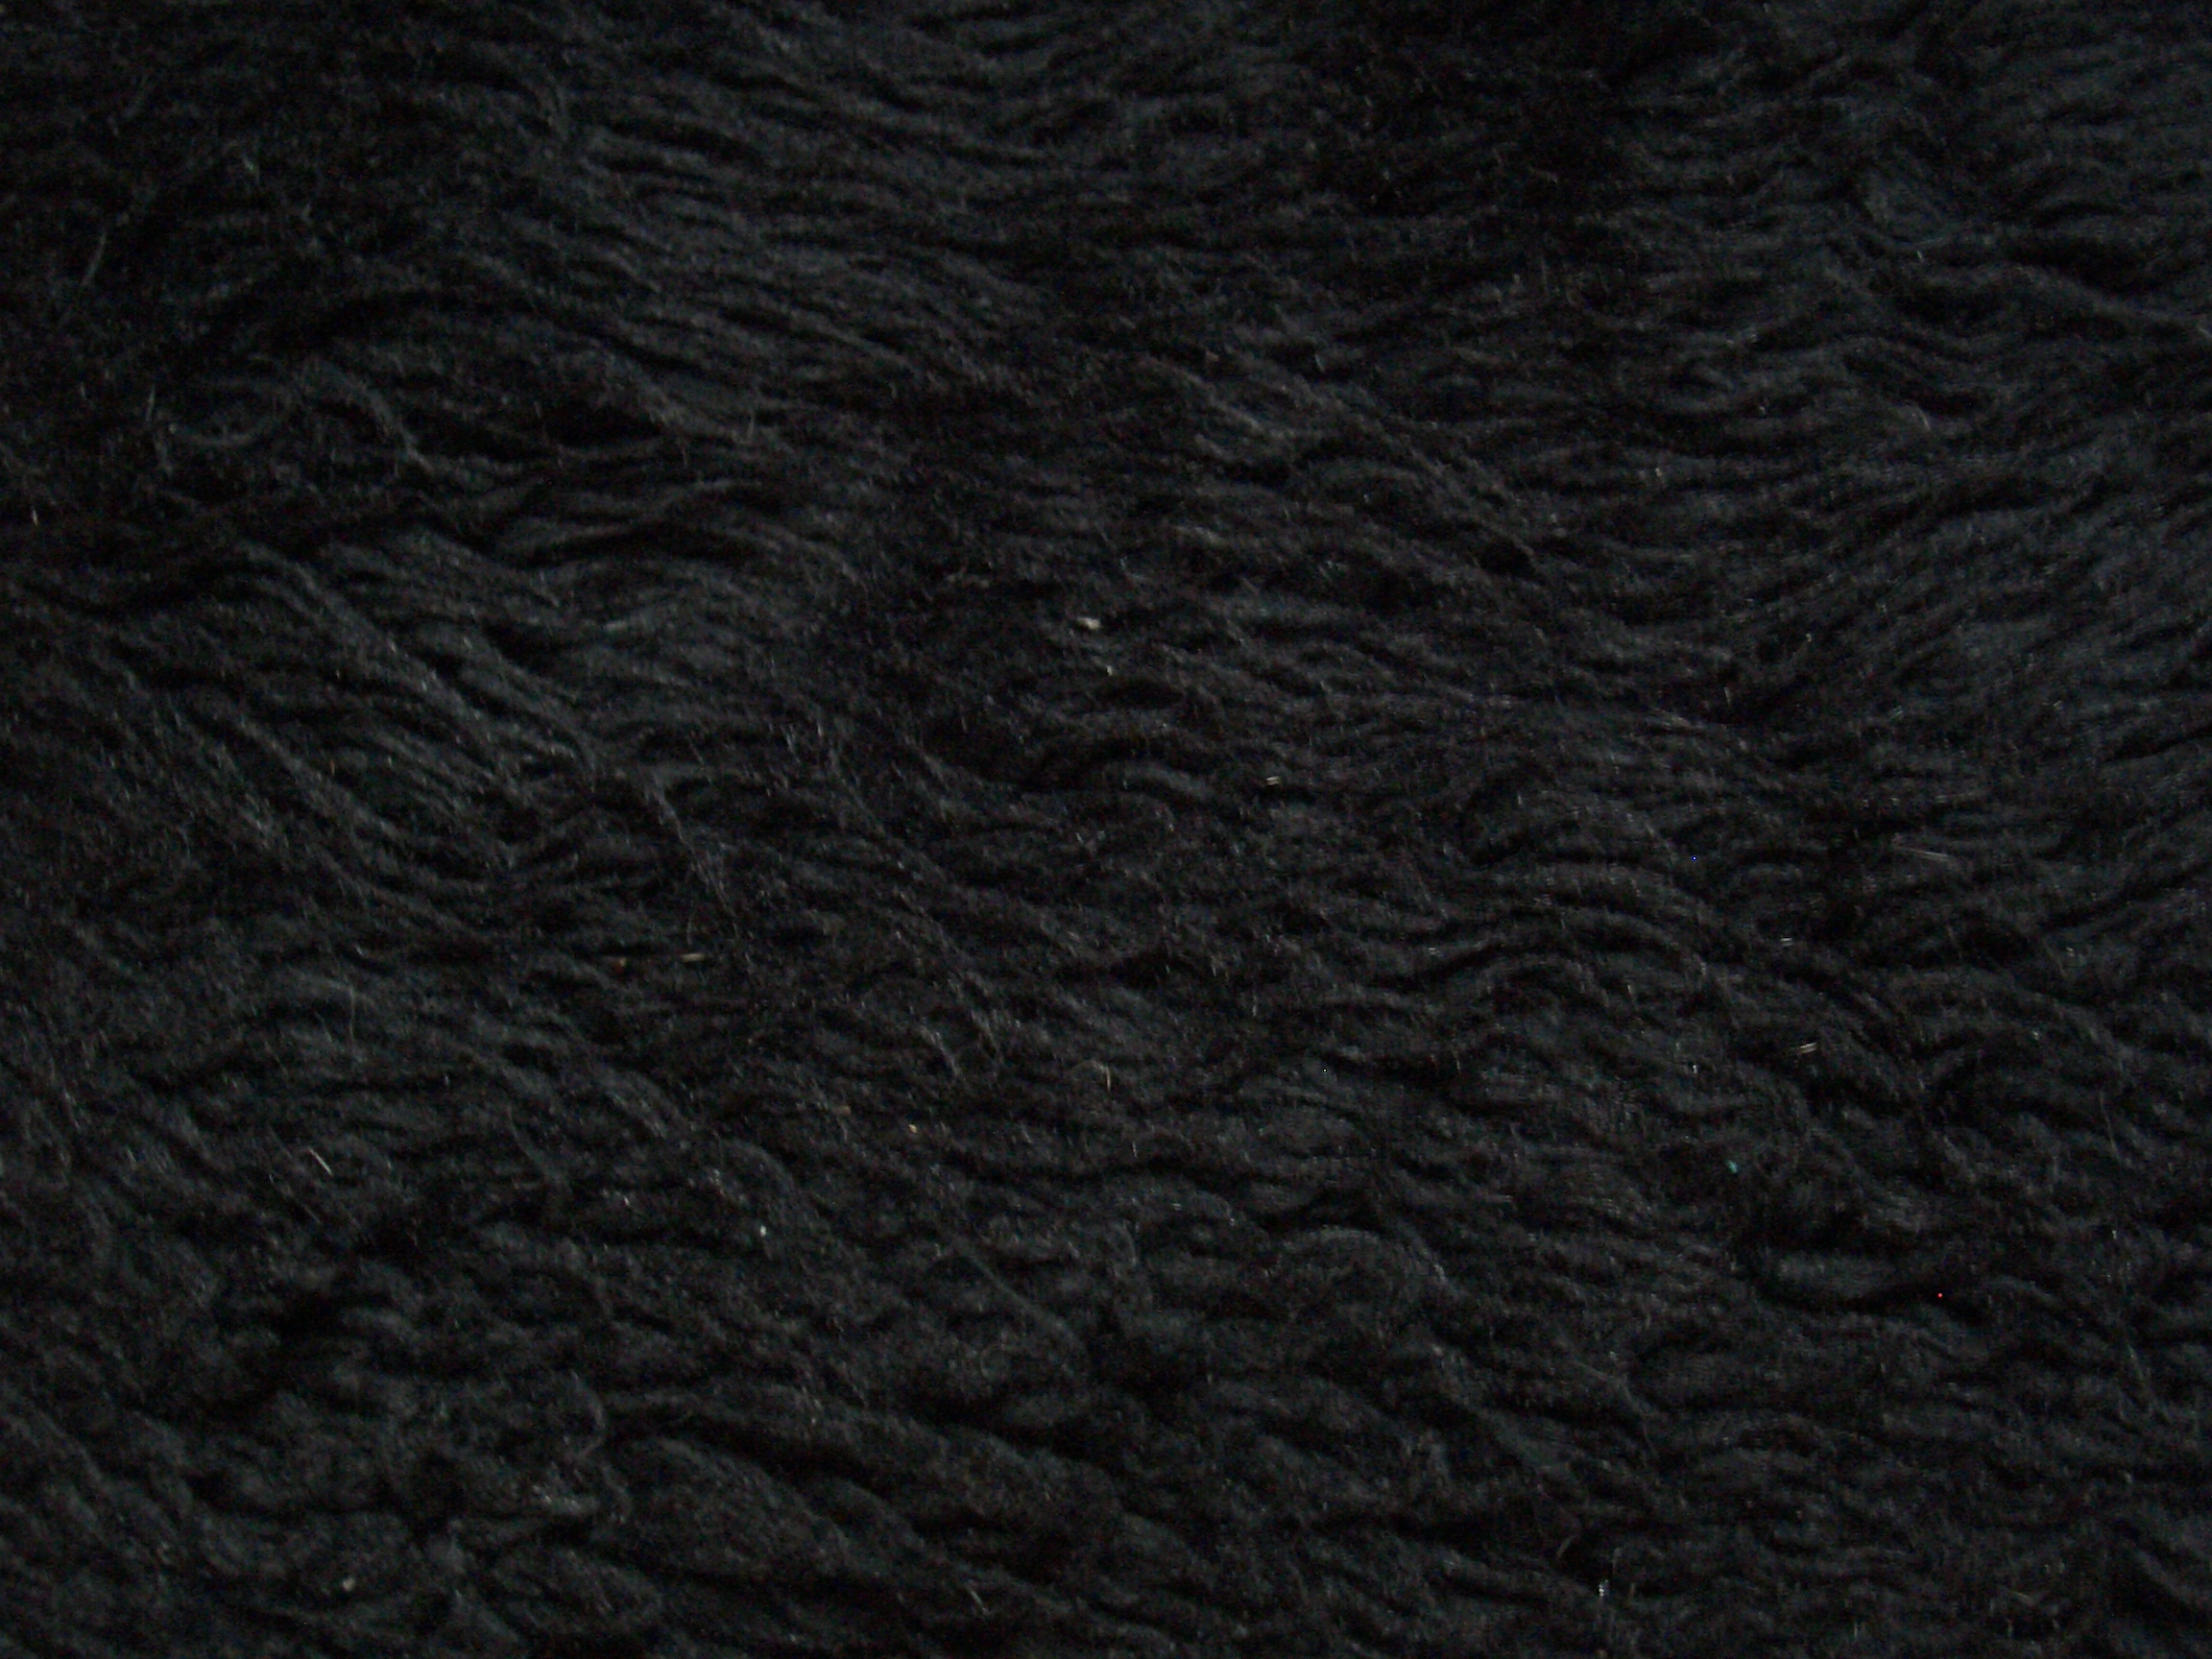 Black Rug Hand Woven Neutral Denim Area Rug 5x8 8x10